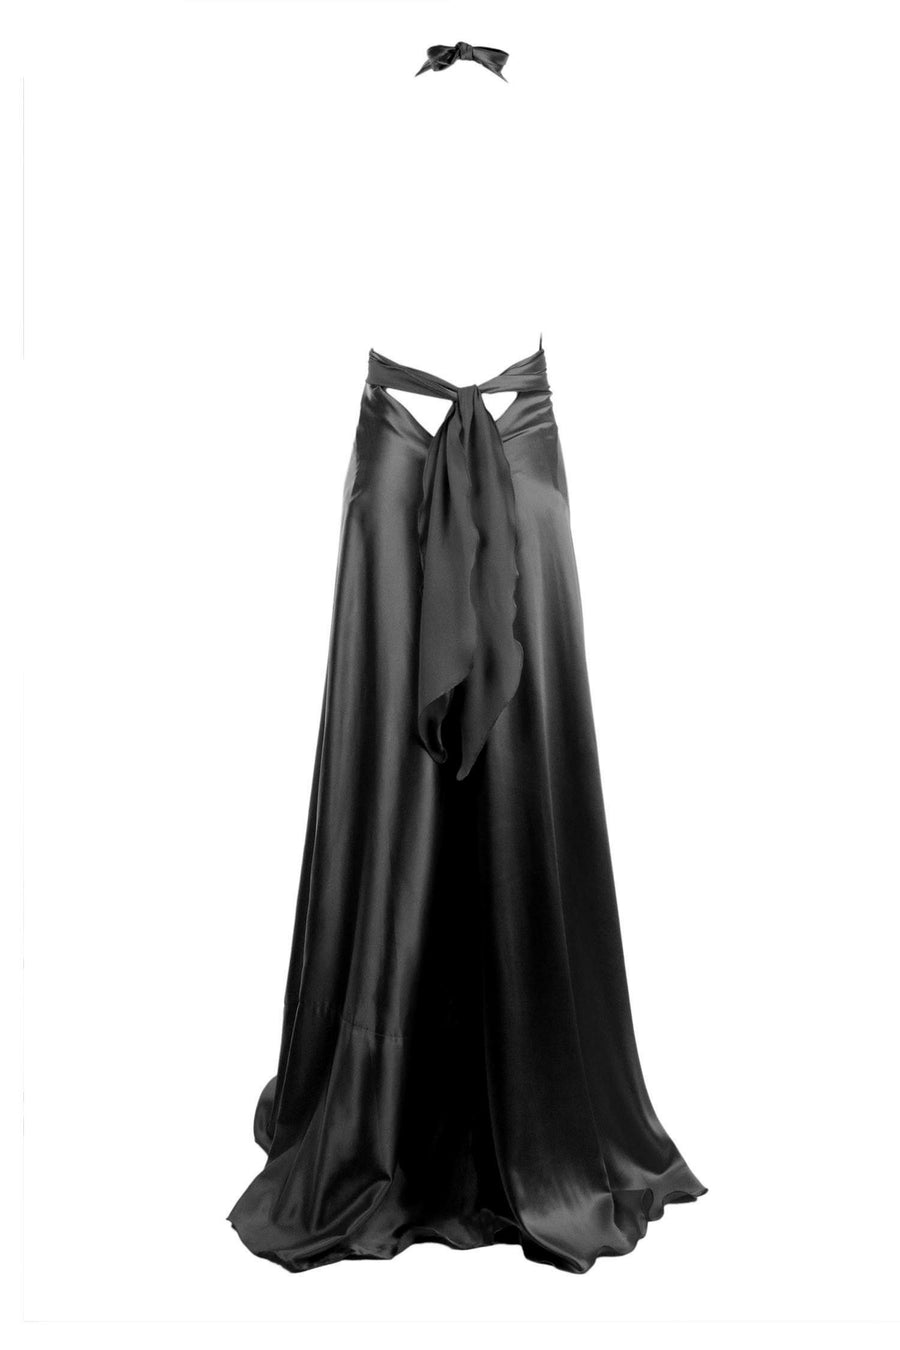 Vixen Gown in Black by Lucy Laurita - Leiela Frockaholics.com